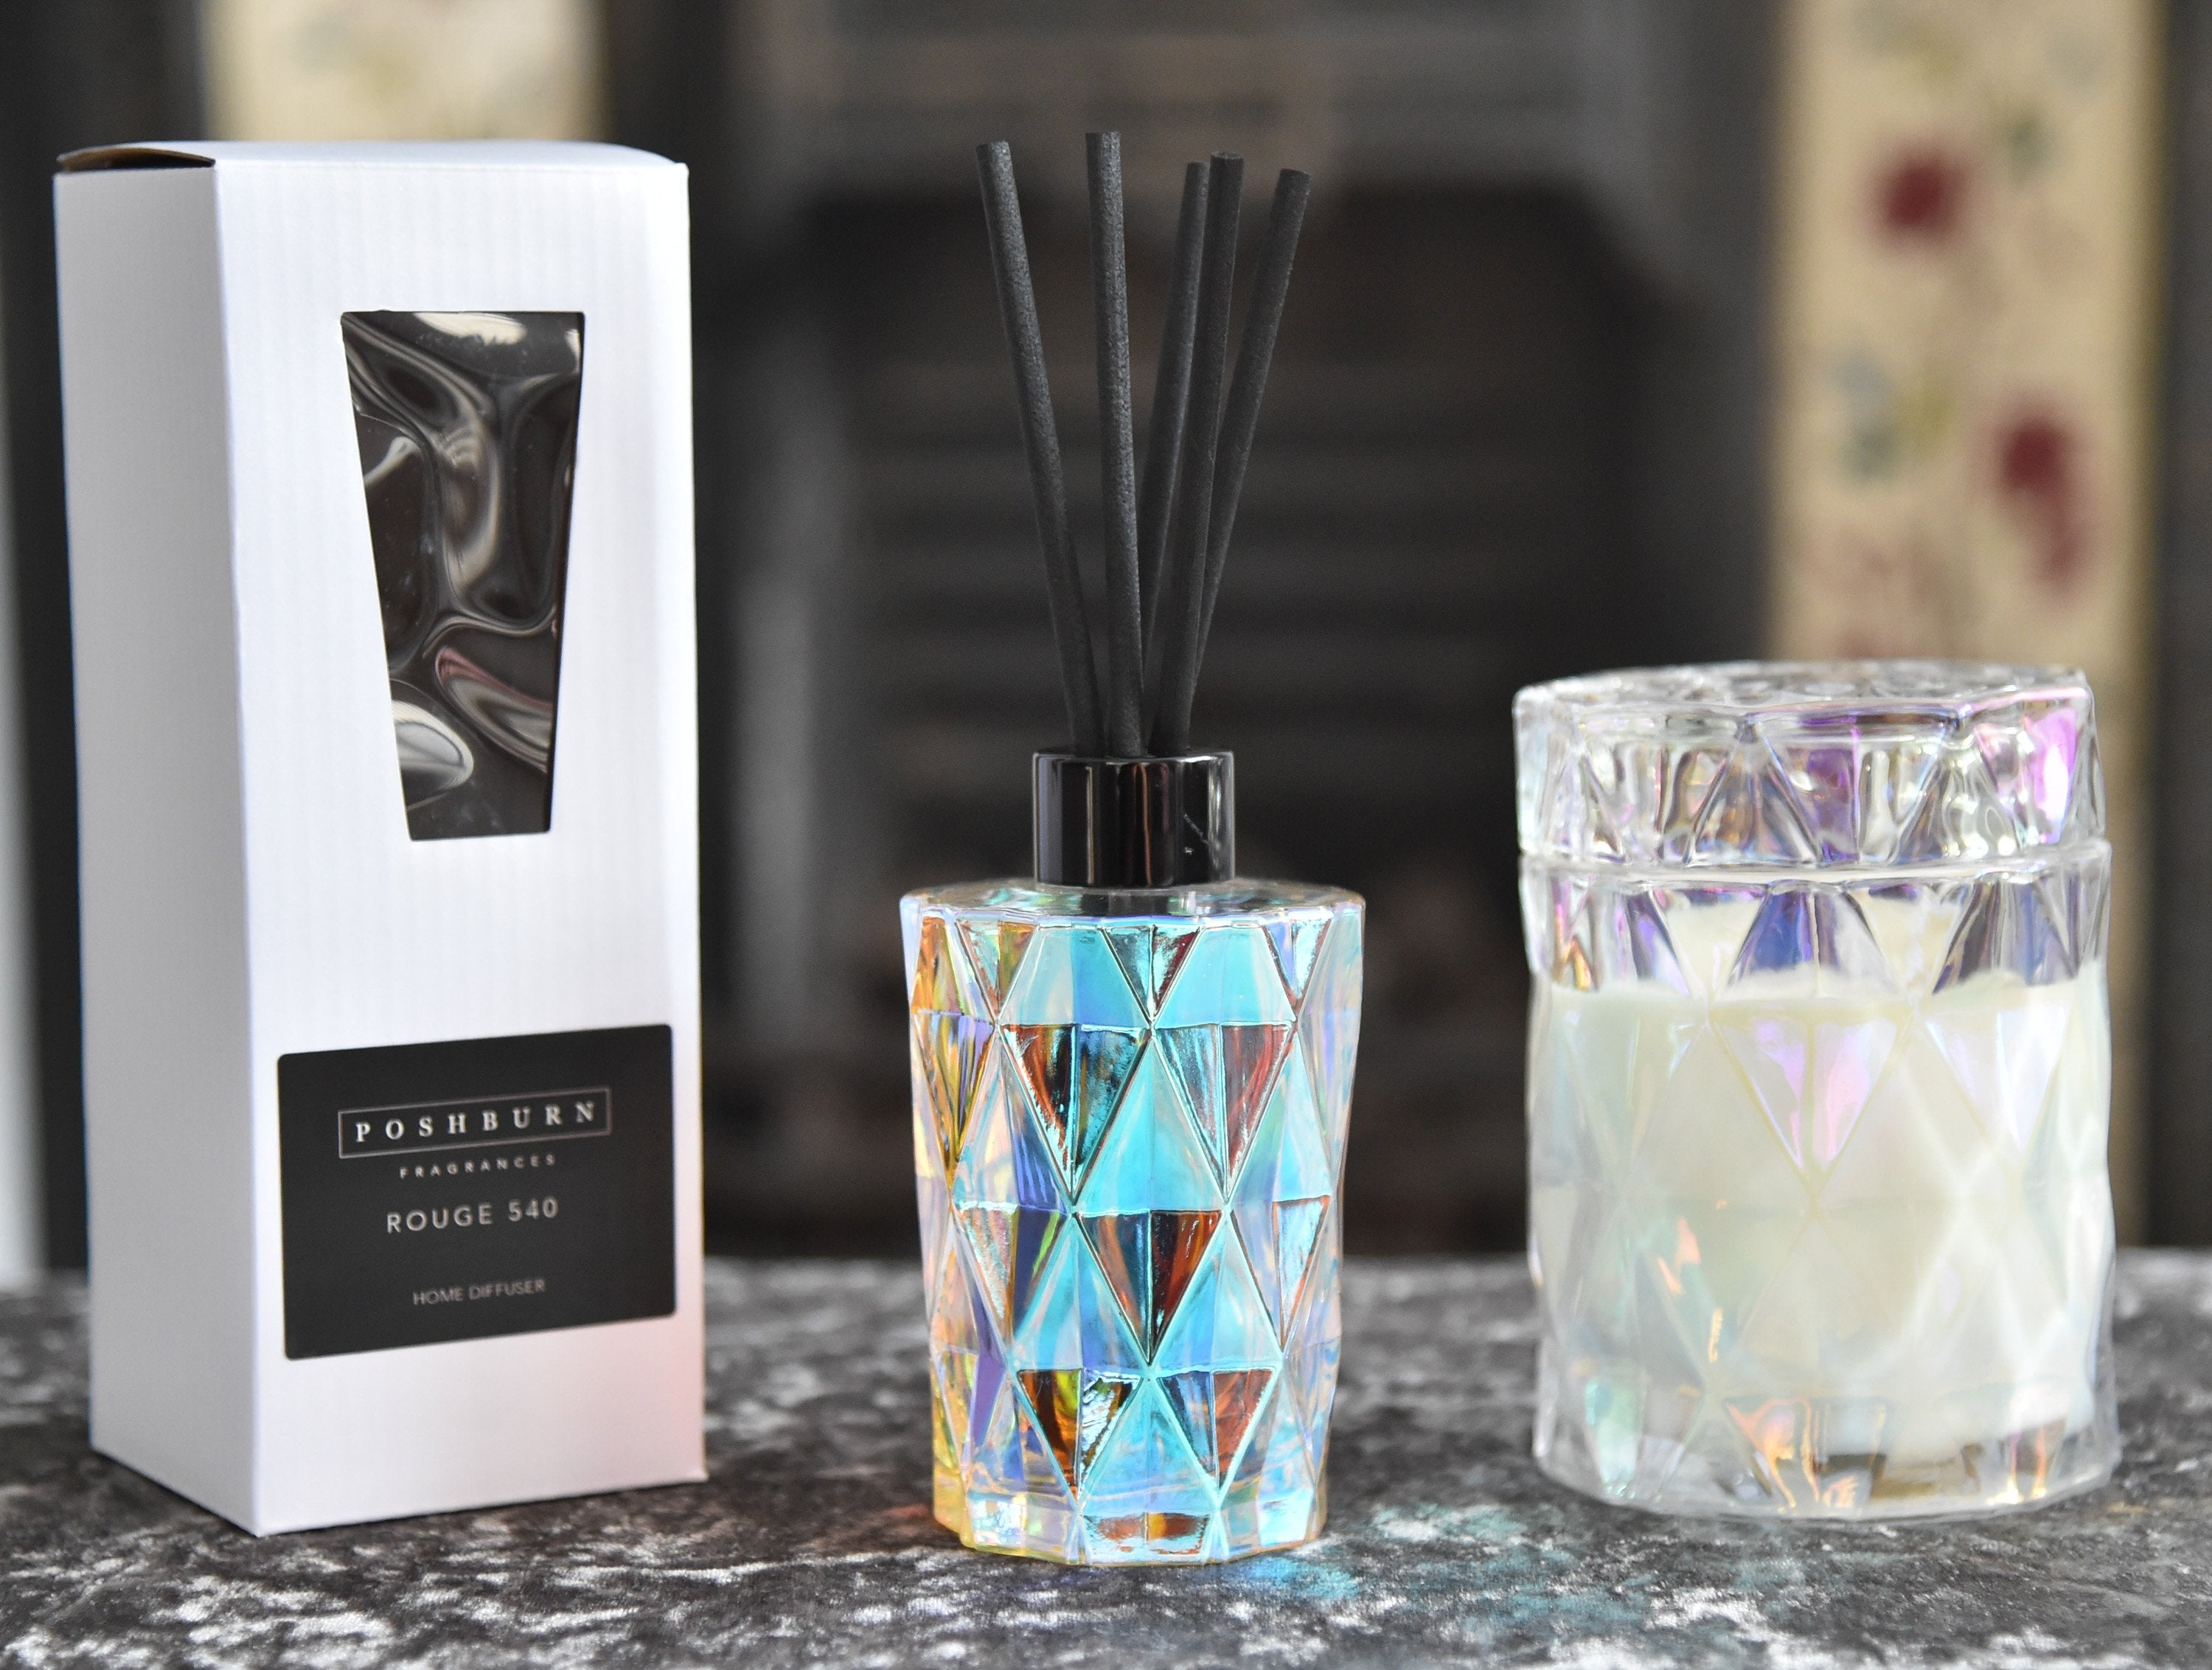 Diamond Home Diffuser & Soy Candle